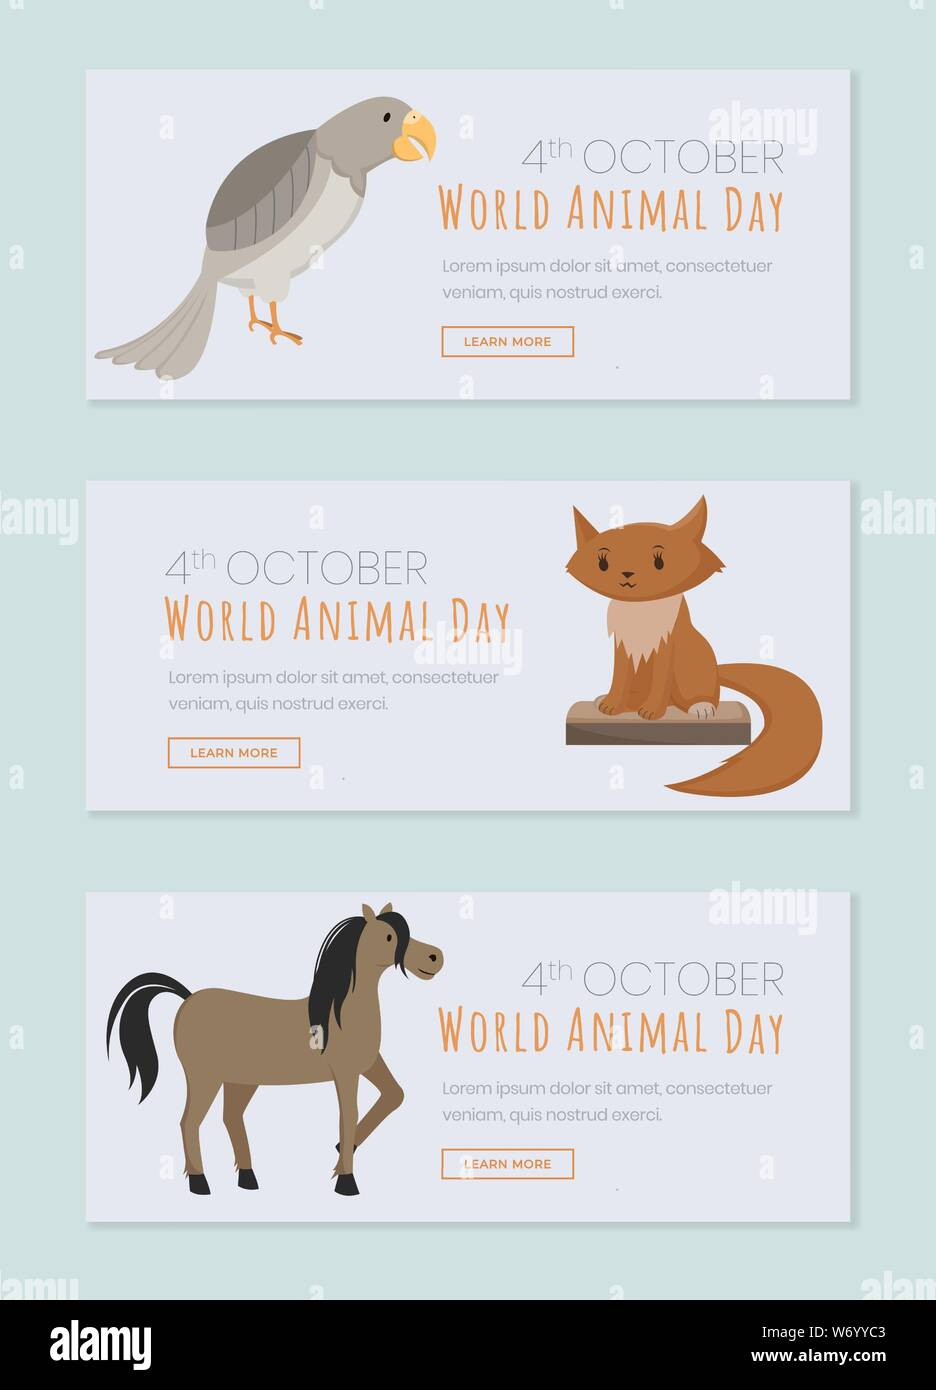 World animals day landing page templates  Saving domestic